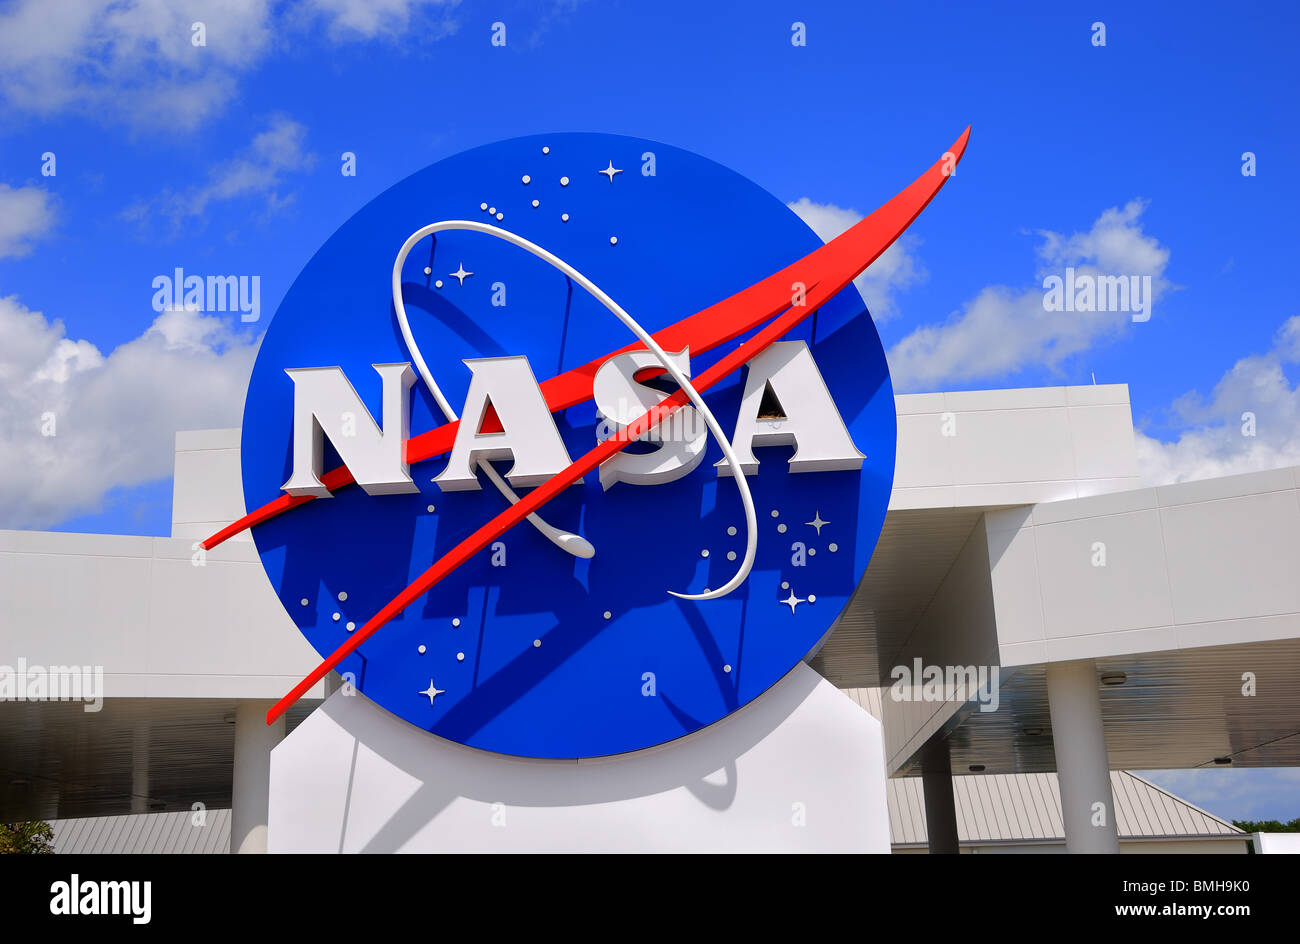 Sign at the entrance to The Kennedy Space Centers Visitor Centre at Cape Canaveral, Florida, United States of America - Stock Image